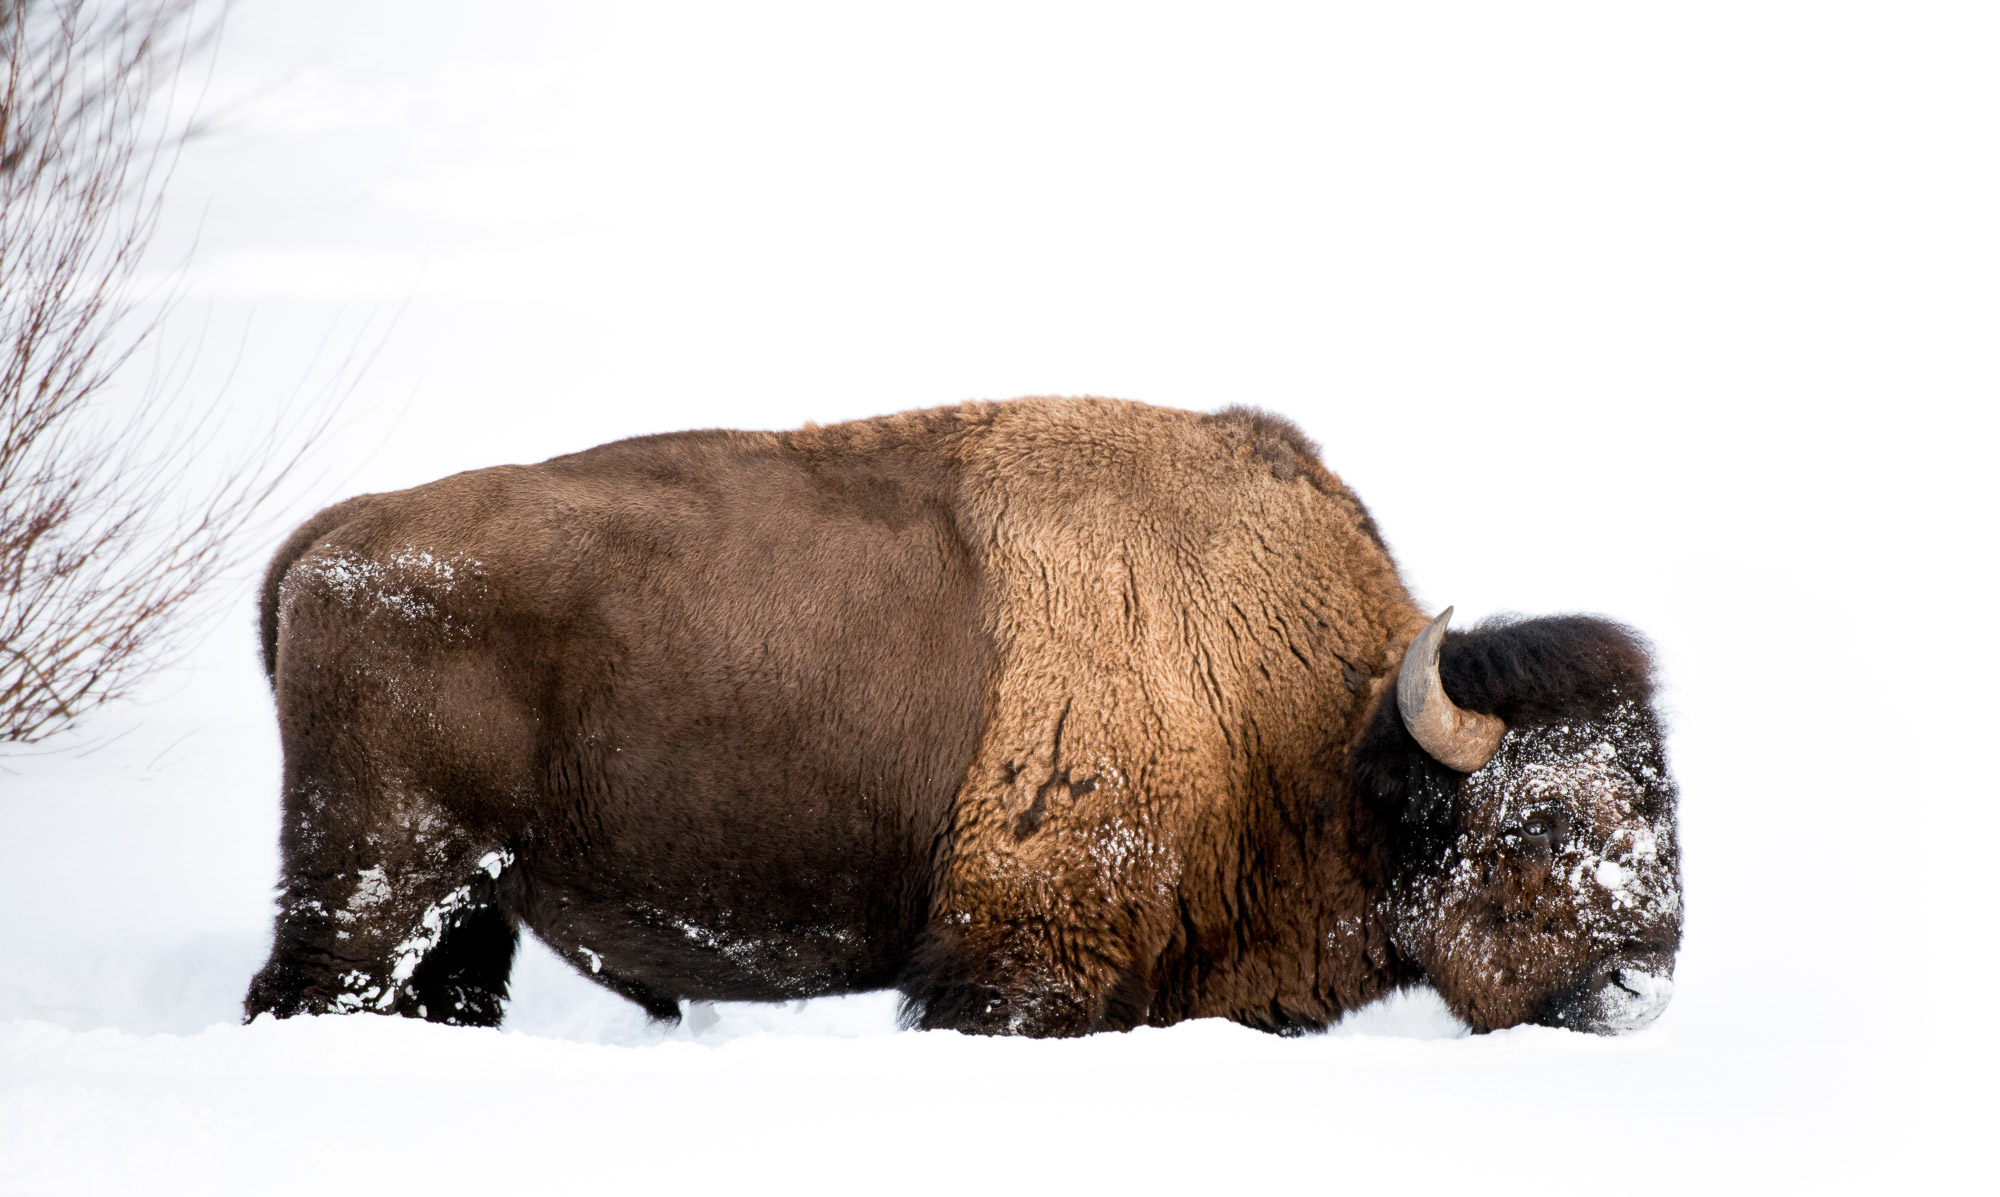 Forlorn bison feeding in snow - Yellowstone National Park, Wyoming